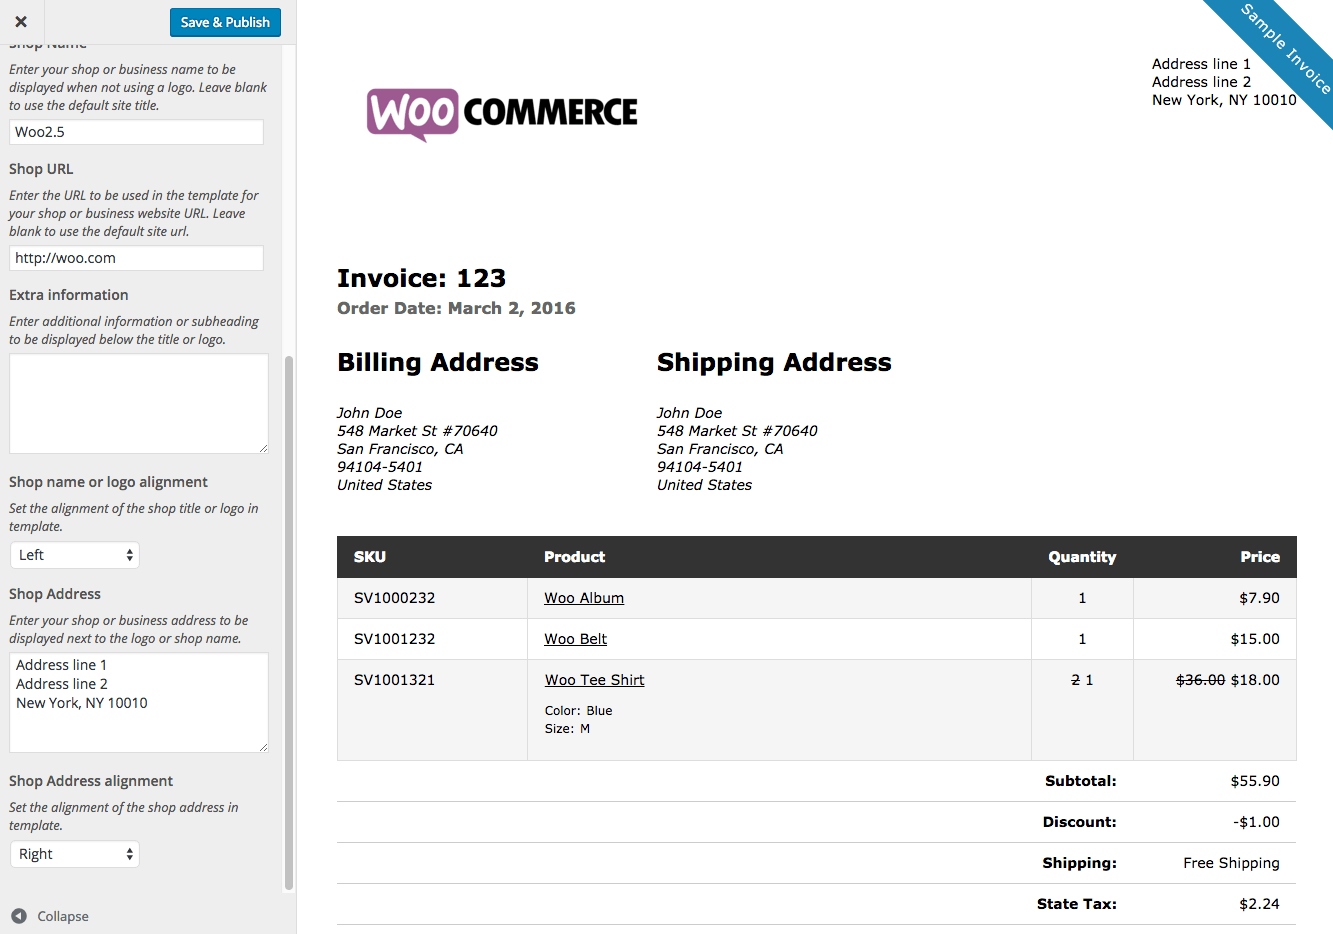 Usdgus  Prepossessing Print Invoices Amp Packing Lists  Woocommerce With Glamorous Woocommerce Print Invoices  Packing Lists Customizer With Easy On The Eye Purchase Invoice Definition Also Canada Custom Invoice In Addition How To Fill Out A Commercial Invoice And Salesforce Invoicing As Well As Lexus Invoice Price Additionally Please Find Attached Invoice From Woocommercecom With Usdgus  Glamorous Print Invoices Amp Packing Lists  Woocommerce With Easy On The Eye Woocommerce Print Invoices  Packing Lists Customizer And Prepossessing Purchase Invoice Definition Also Canada Custom Invoice In Addition How To Fill Out A Commercial Invoice From Woocommercecom